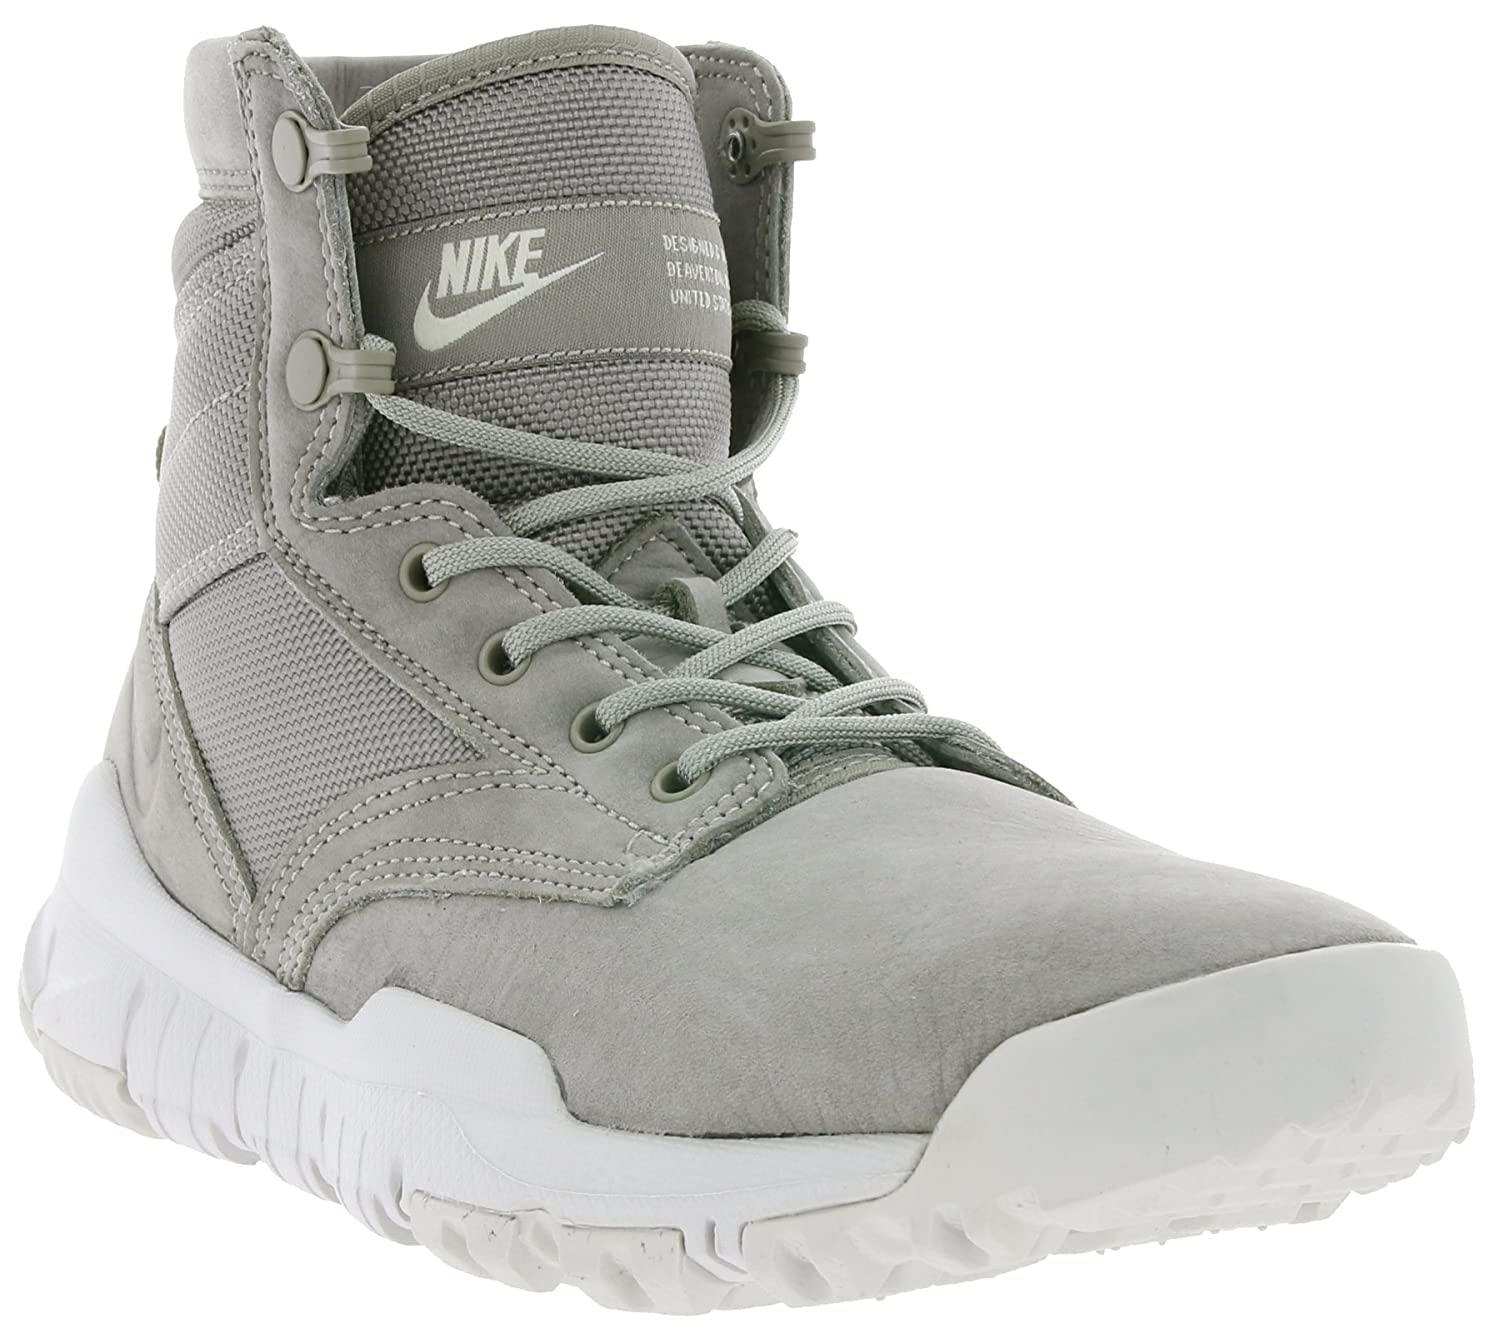 Nike Damen 862511-200 Trekking-& Wanderstiefel Grau (Light Taupe / Light Taupe / Light Bone)